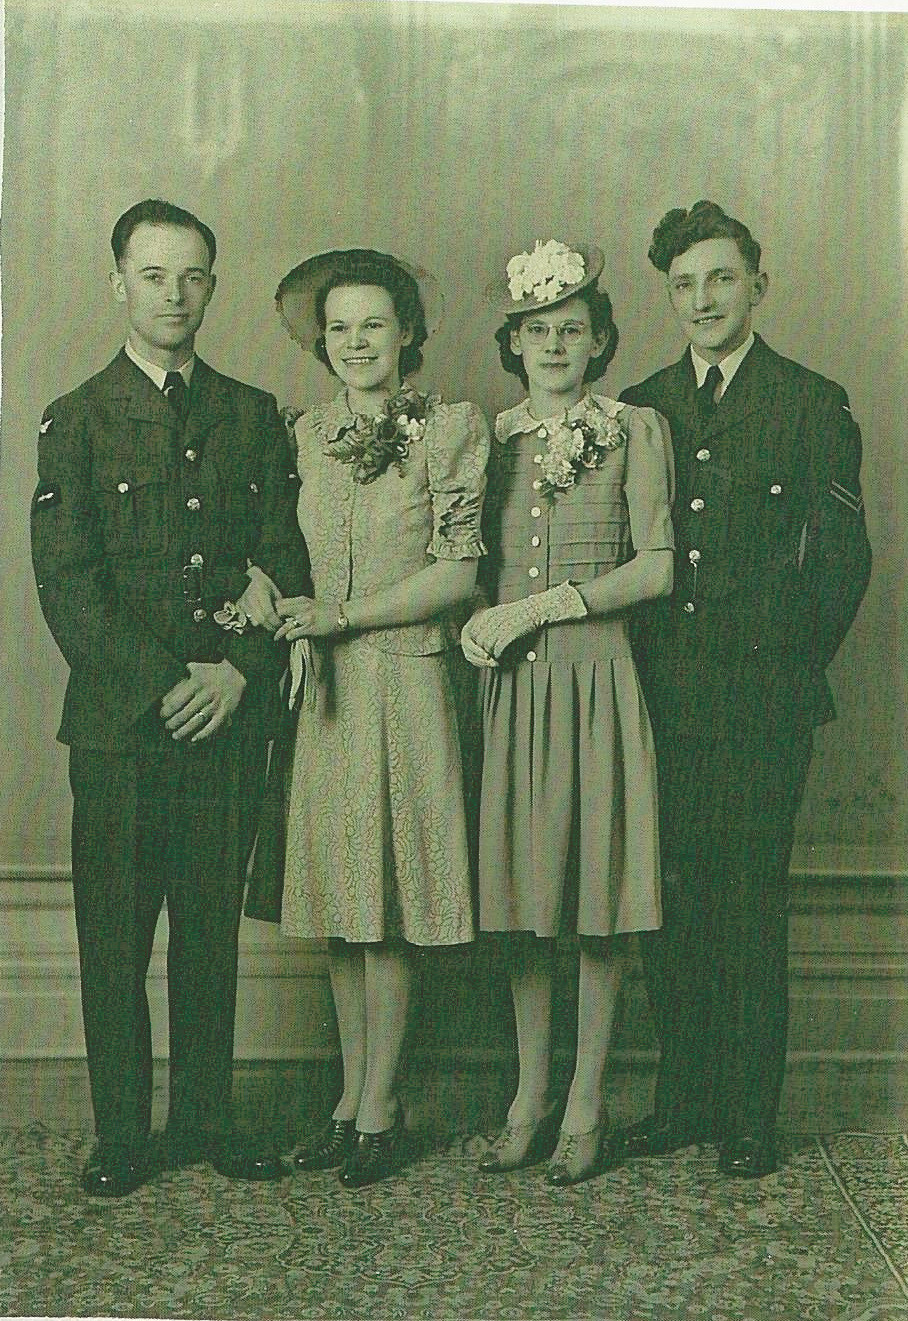 Letty and Ron Evans' wedding day, May 5, 1943.